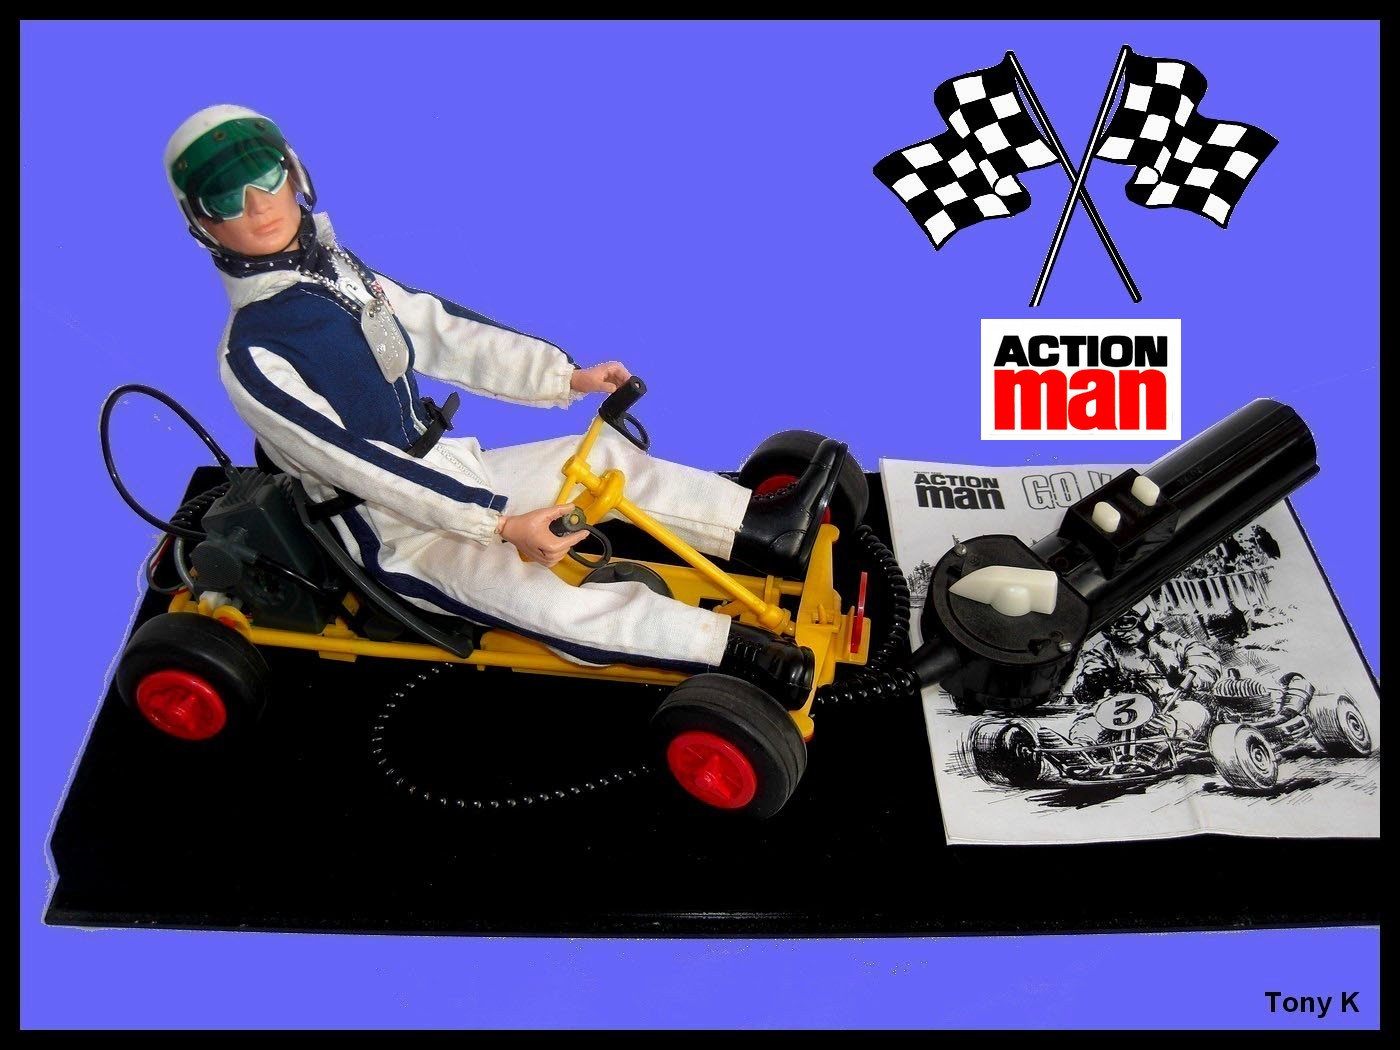 The Action Man Grand Prix F1 Racing Car Design Derives From GI Joeu0027s Yellow  1967 U0027Action Joeu0027 Action Racing Car. This In Turn Was Inspired By Real Life  ...